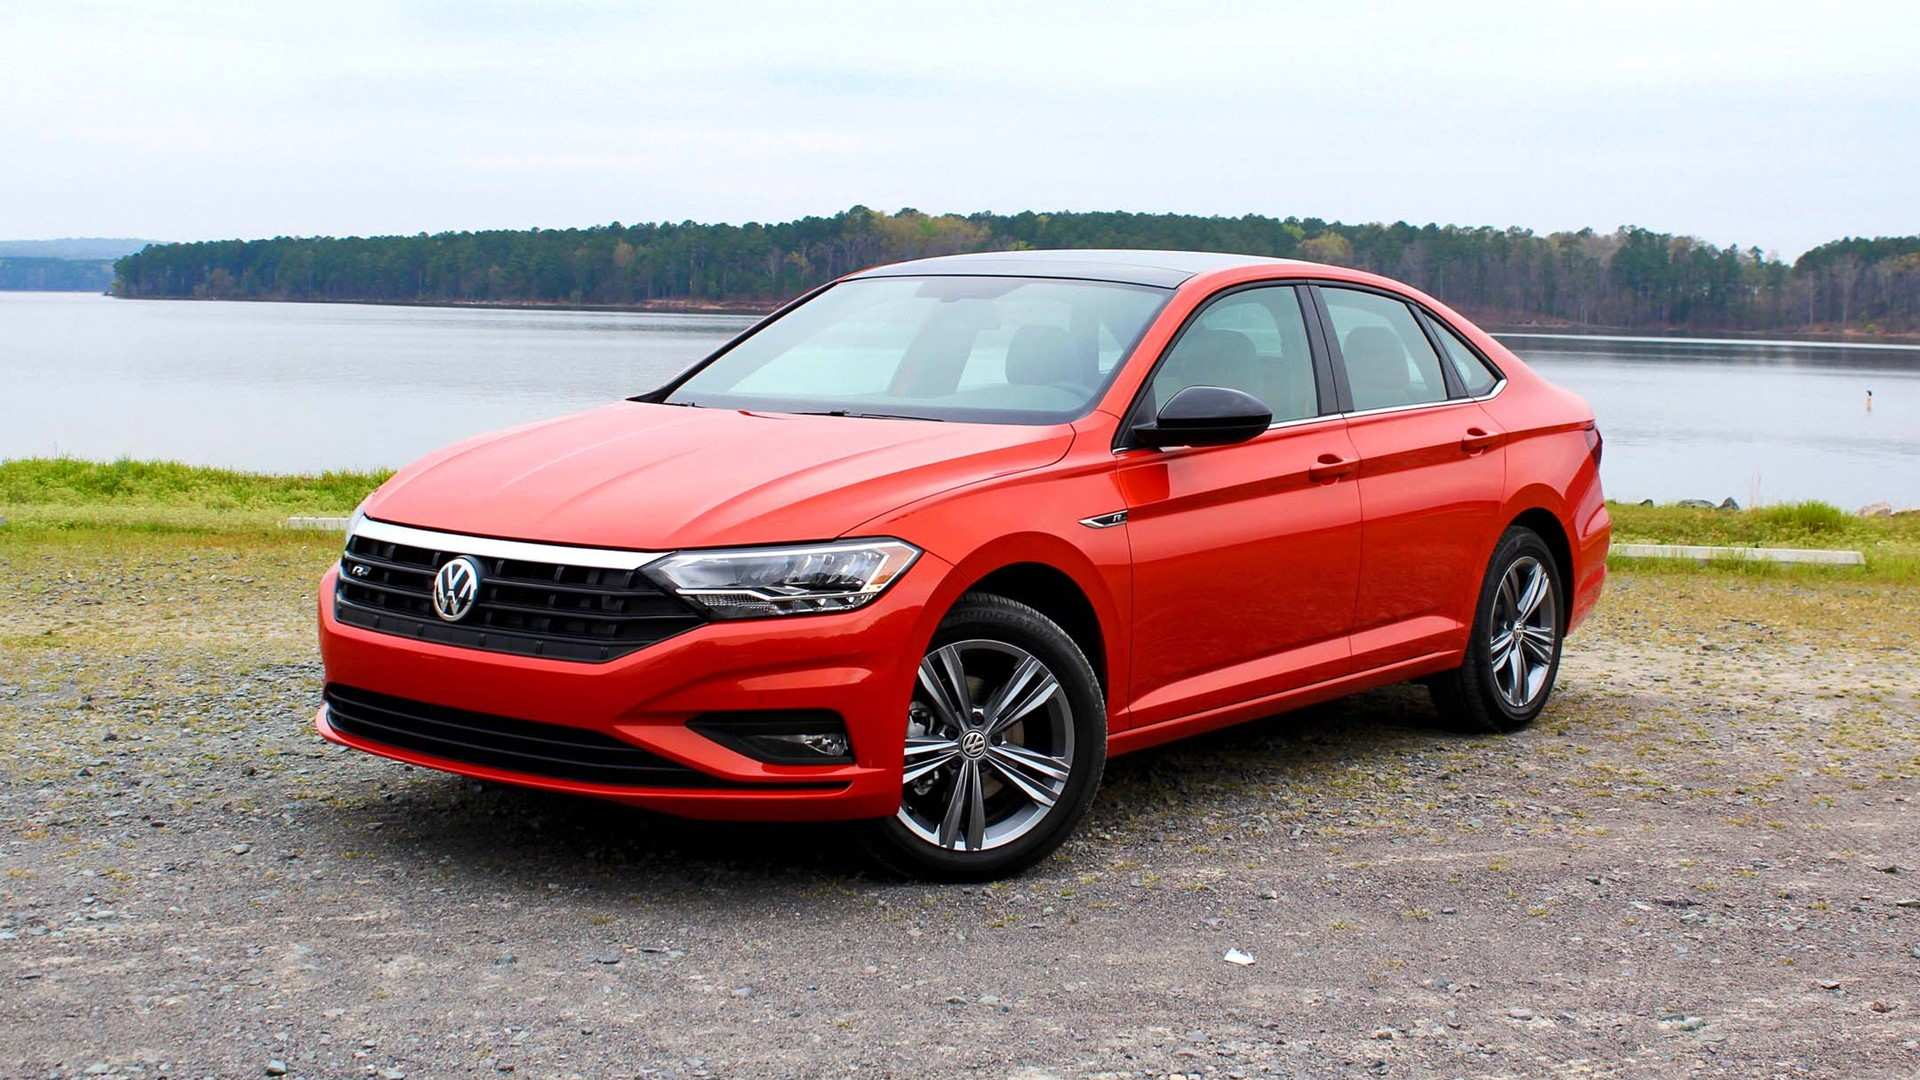 29 Concept of 2019 Vw Jetta Concept by 2019 Vw Jetta